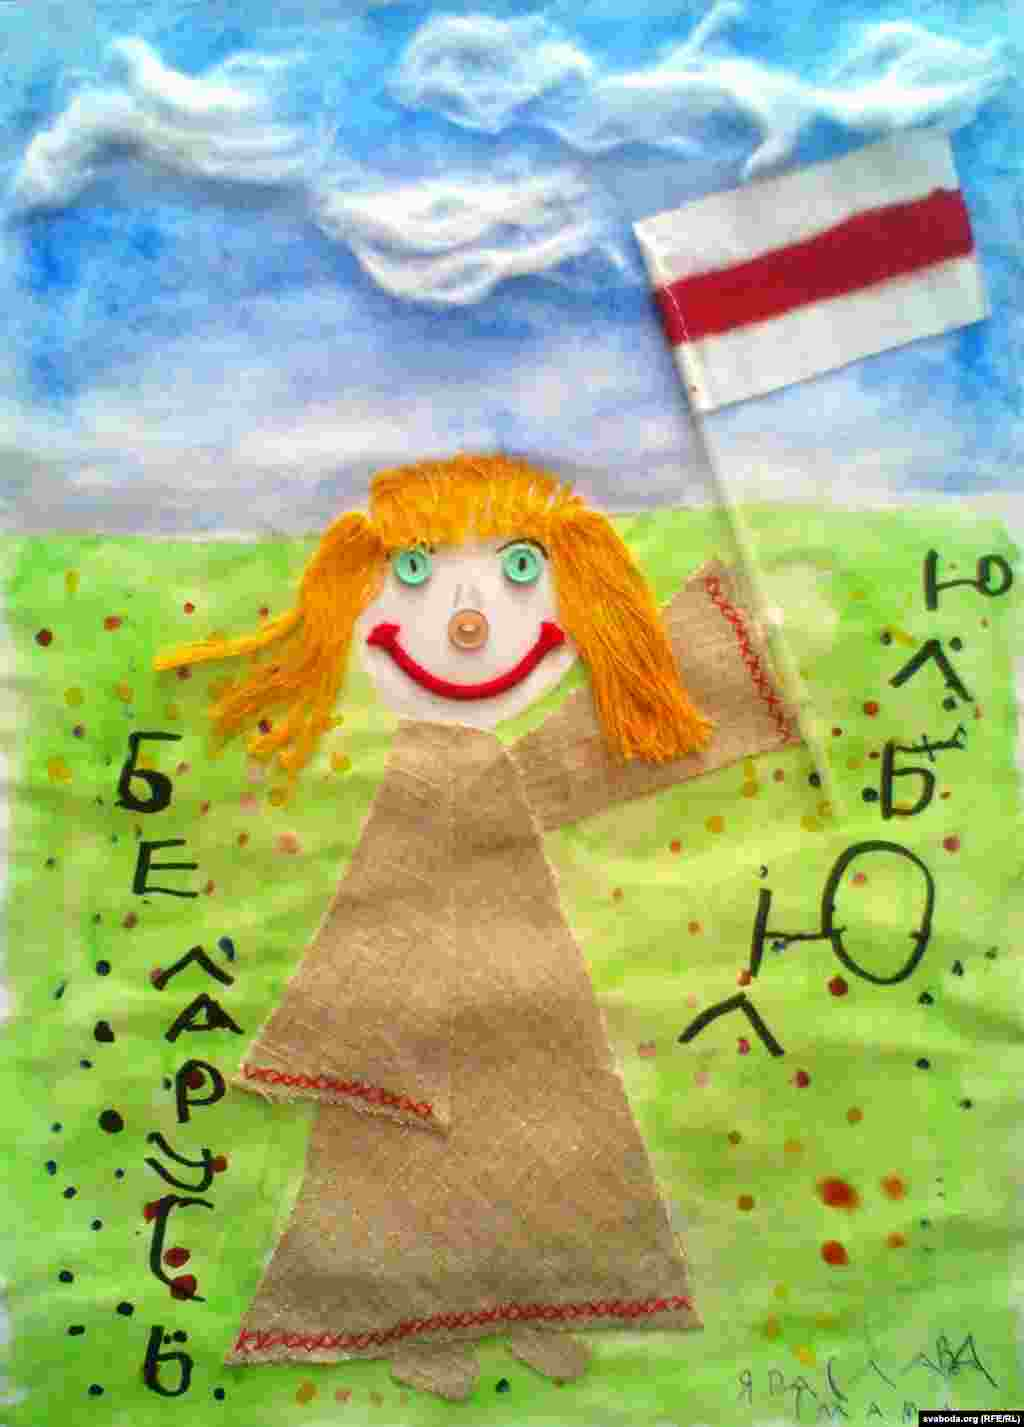 This submission came from a 5-year-old girl and features the forbidden red and white flag of the Belarusian National Republic, the independent state that lasted for less than a year in 1918, and which also served as the country's flag from 1991-95.